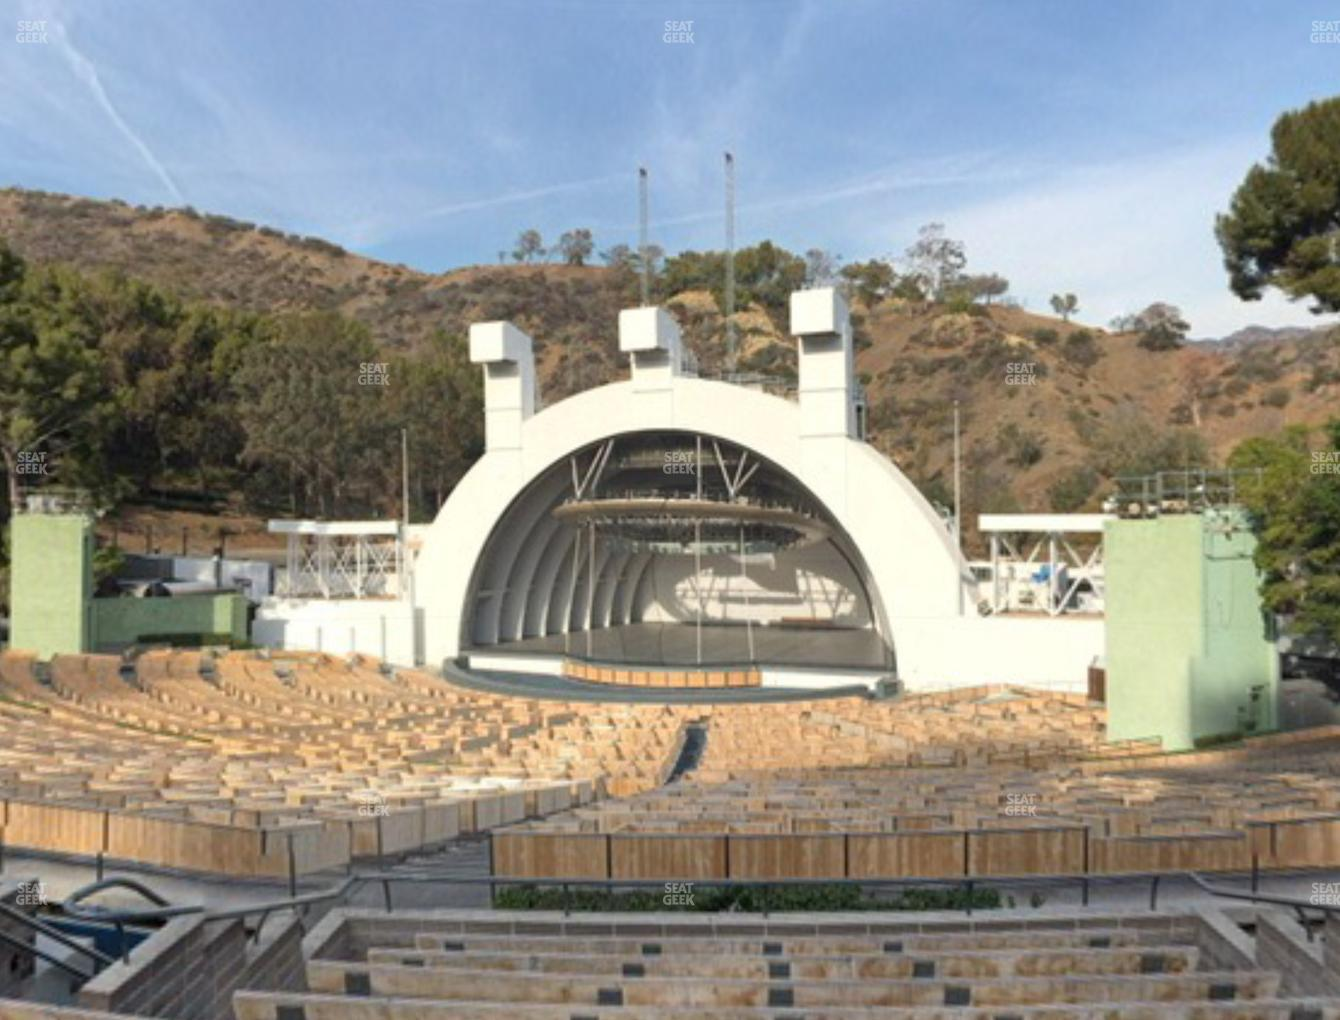 Concert at Hollywood Bowl Section F 1 View